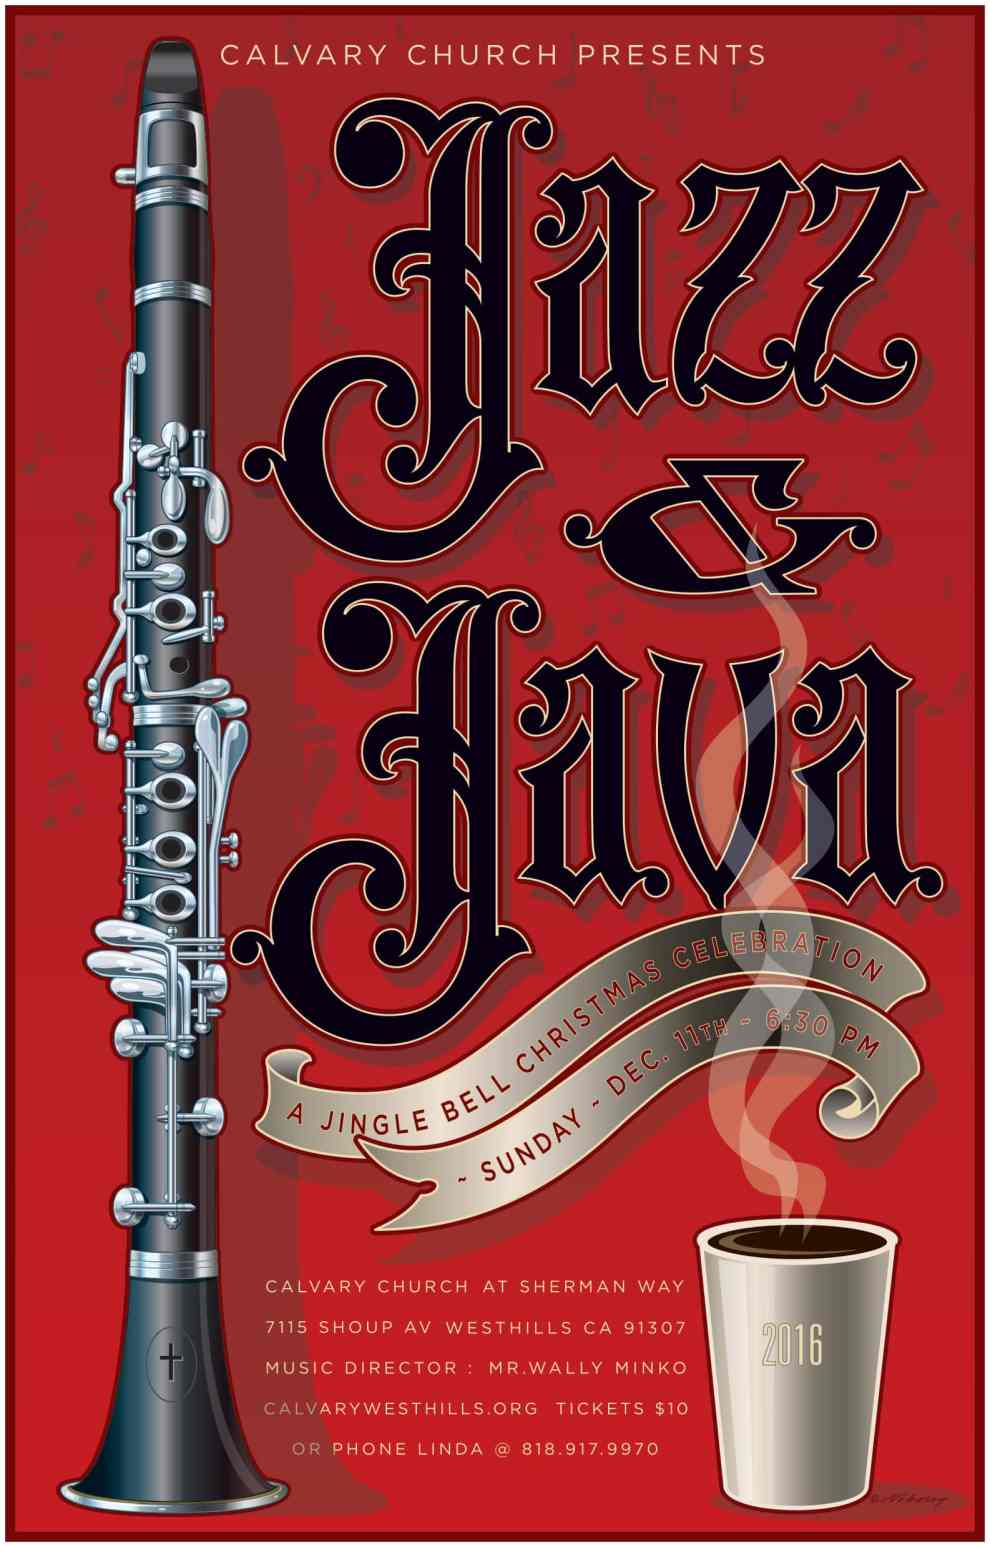 Jazz and Java 2016 - Program Cover